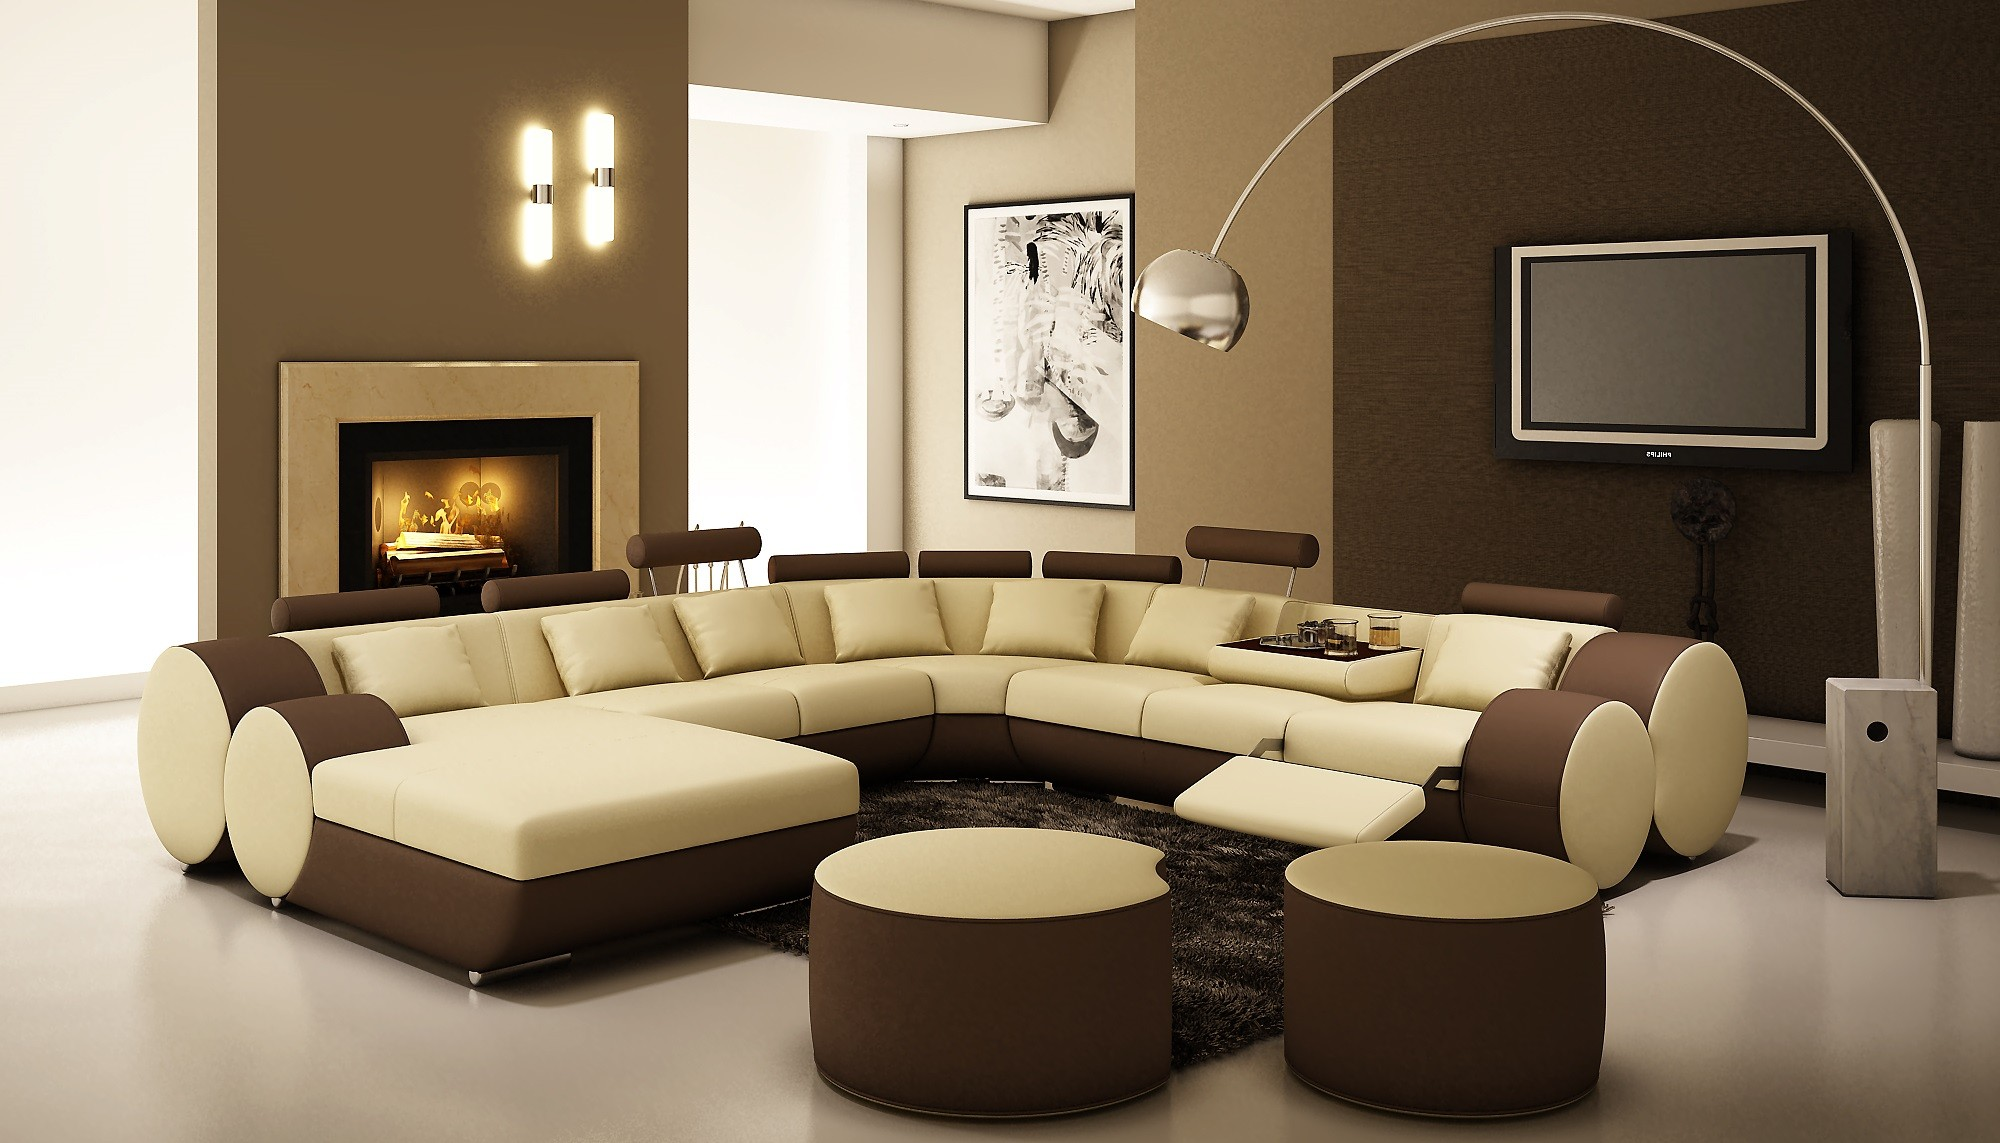 Unique Sectional Sofas Unique Sectional Sofas Bringing An Exciting Decor For Everyone Thesofa